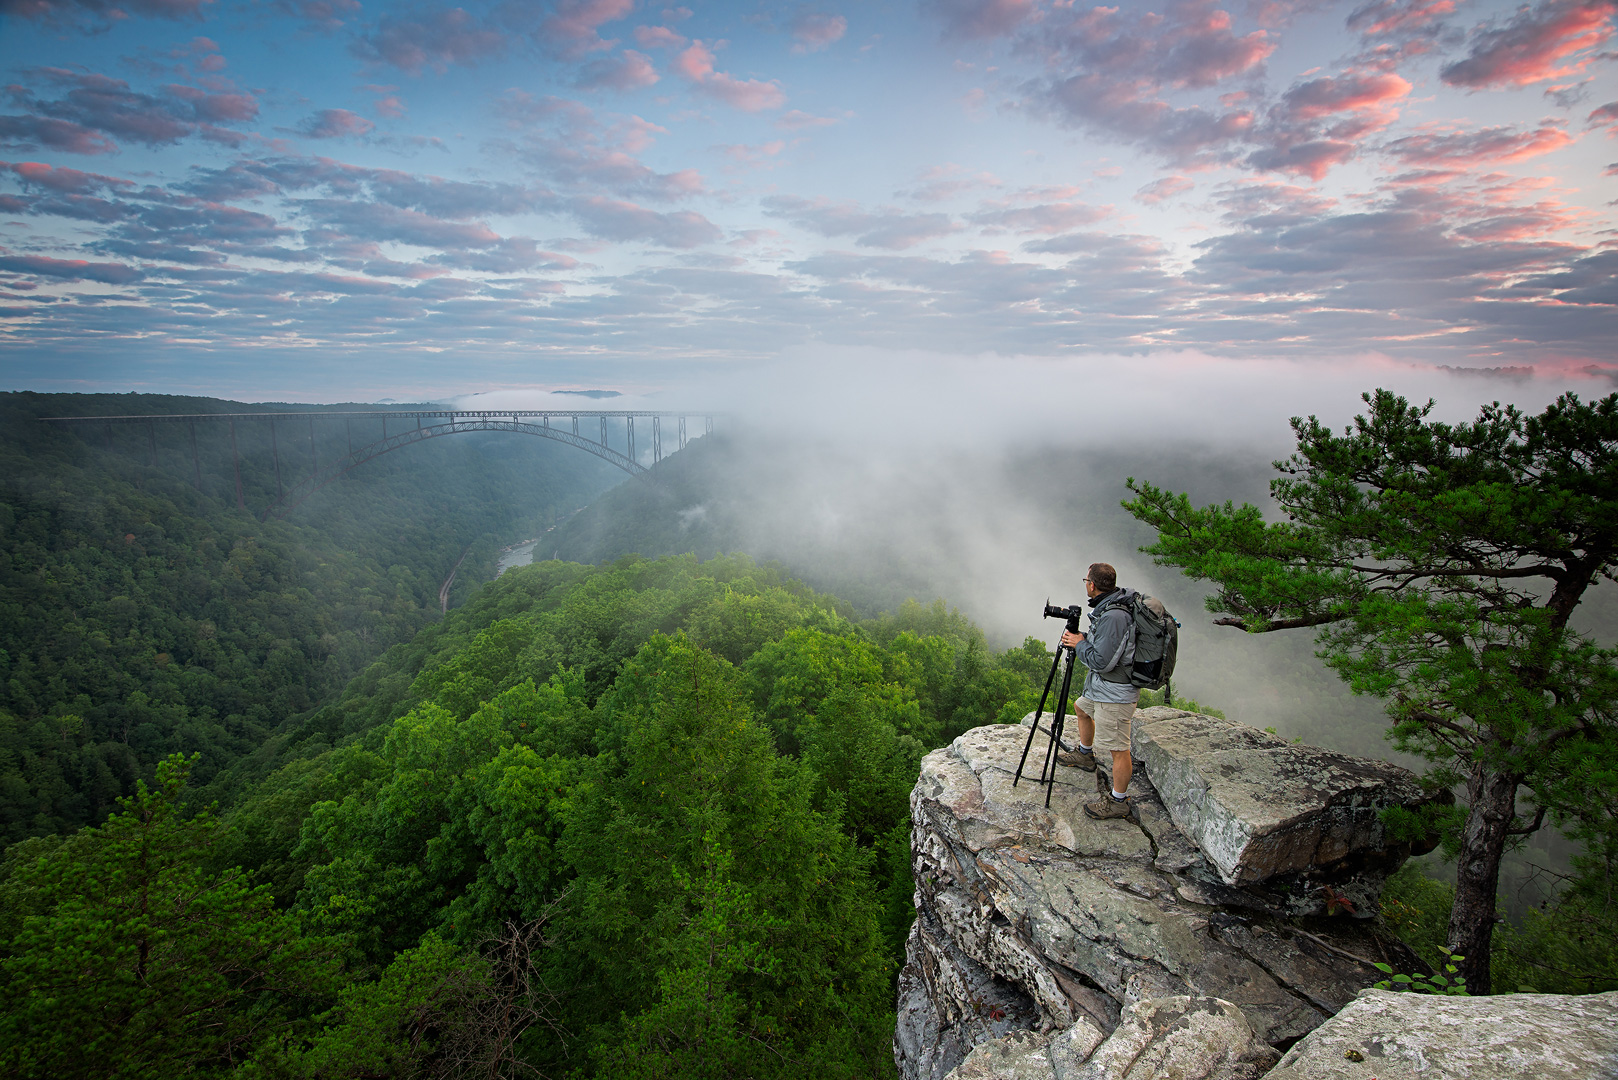 West Virginia, New River Gorge, National Forest, Scenic, Bridge, New River Gorge Bridge, Portrait, Sunrise, Person, Foggy Morning, Foggy, Cliff, Rock Cliff, Bernard Chen, photo